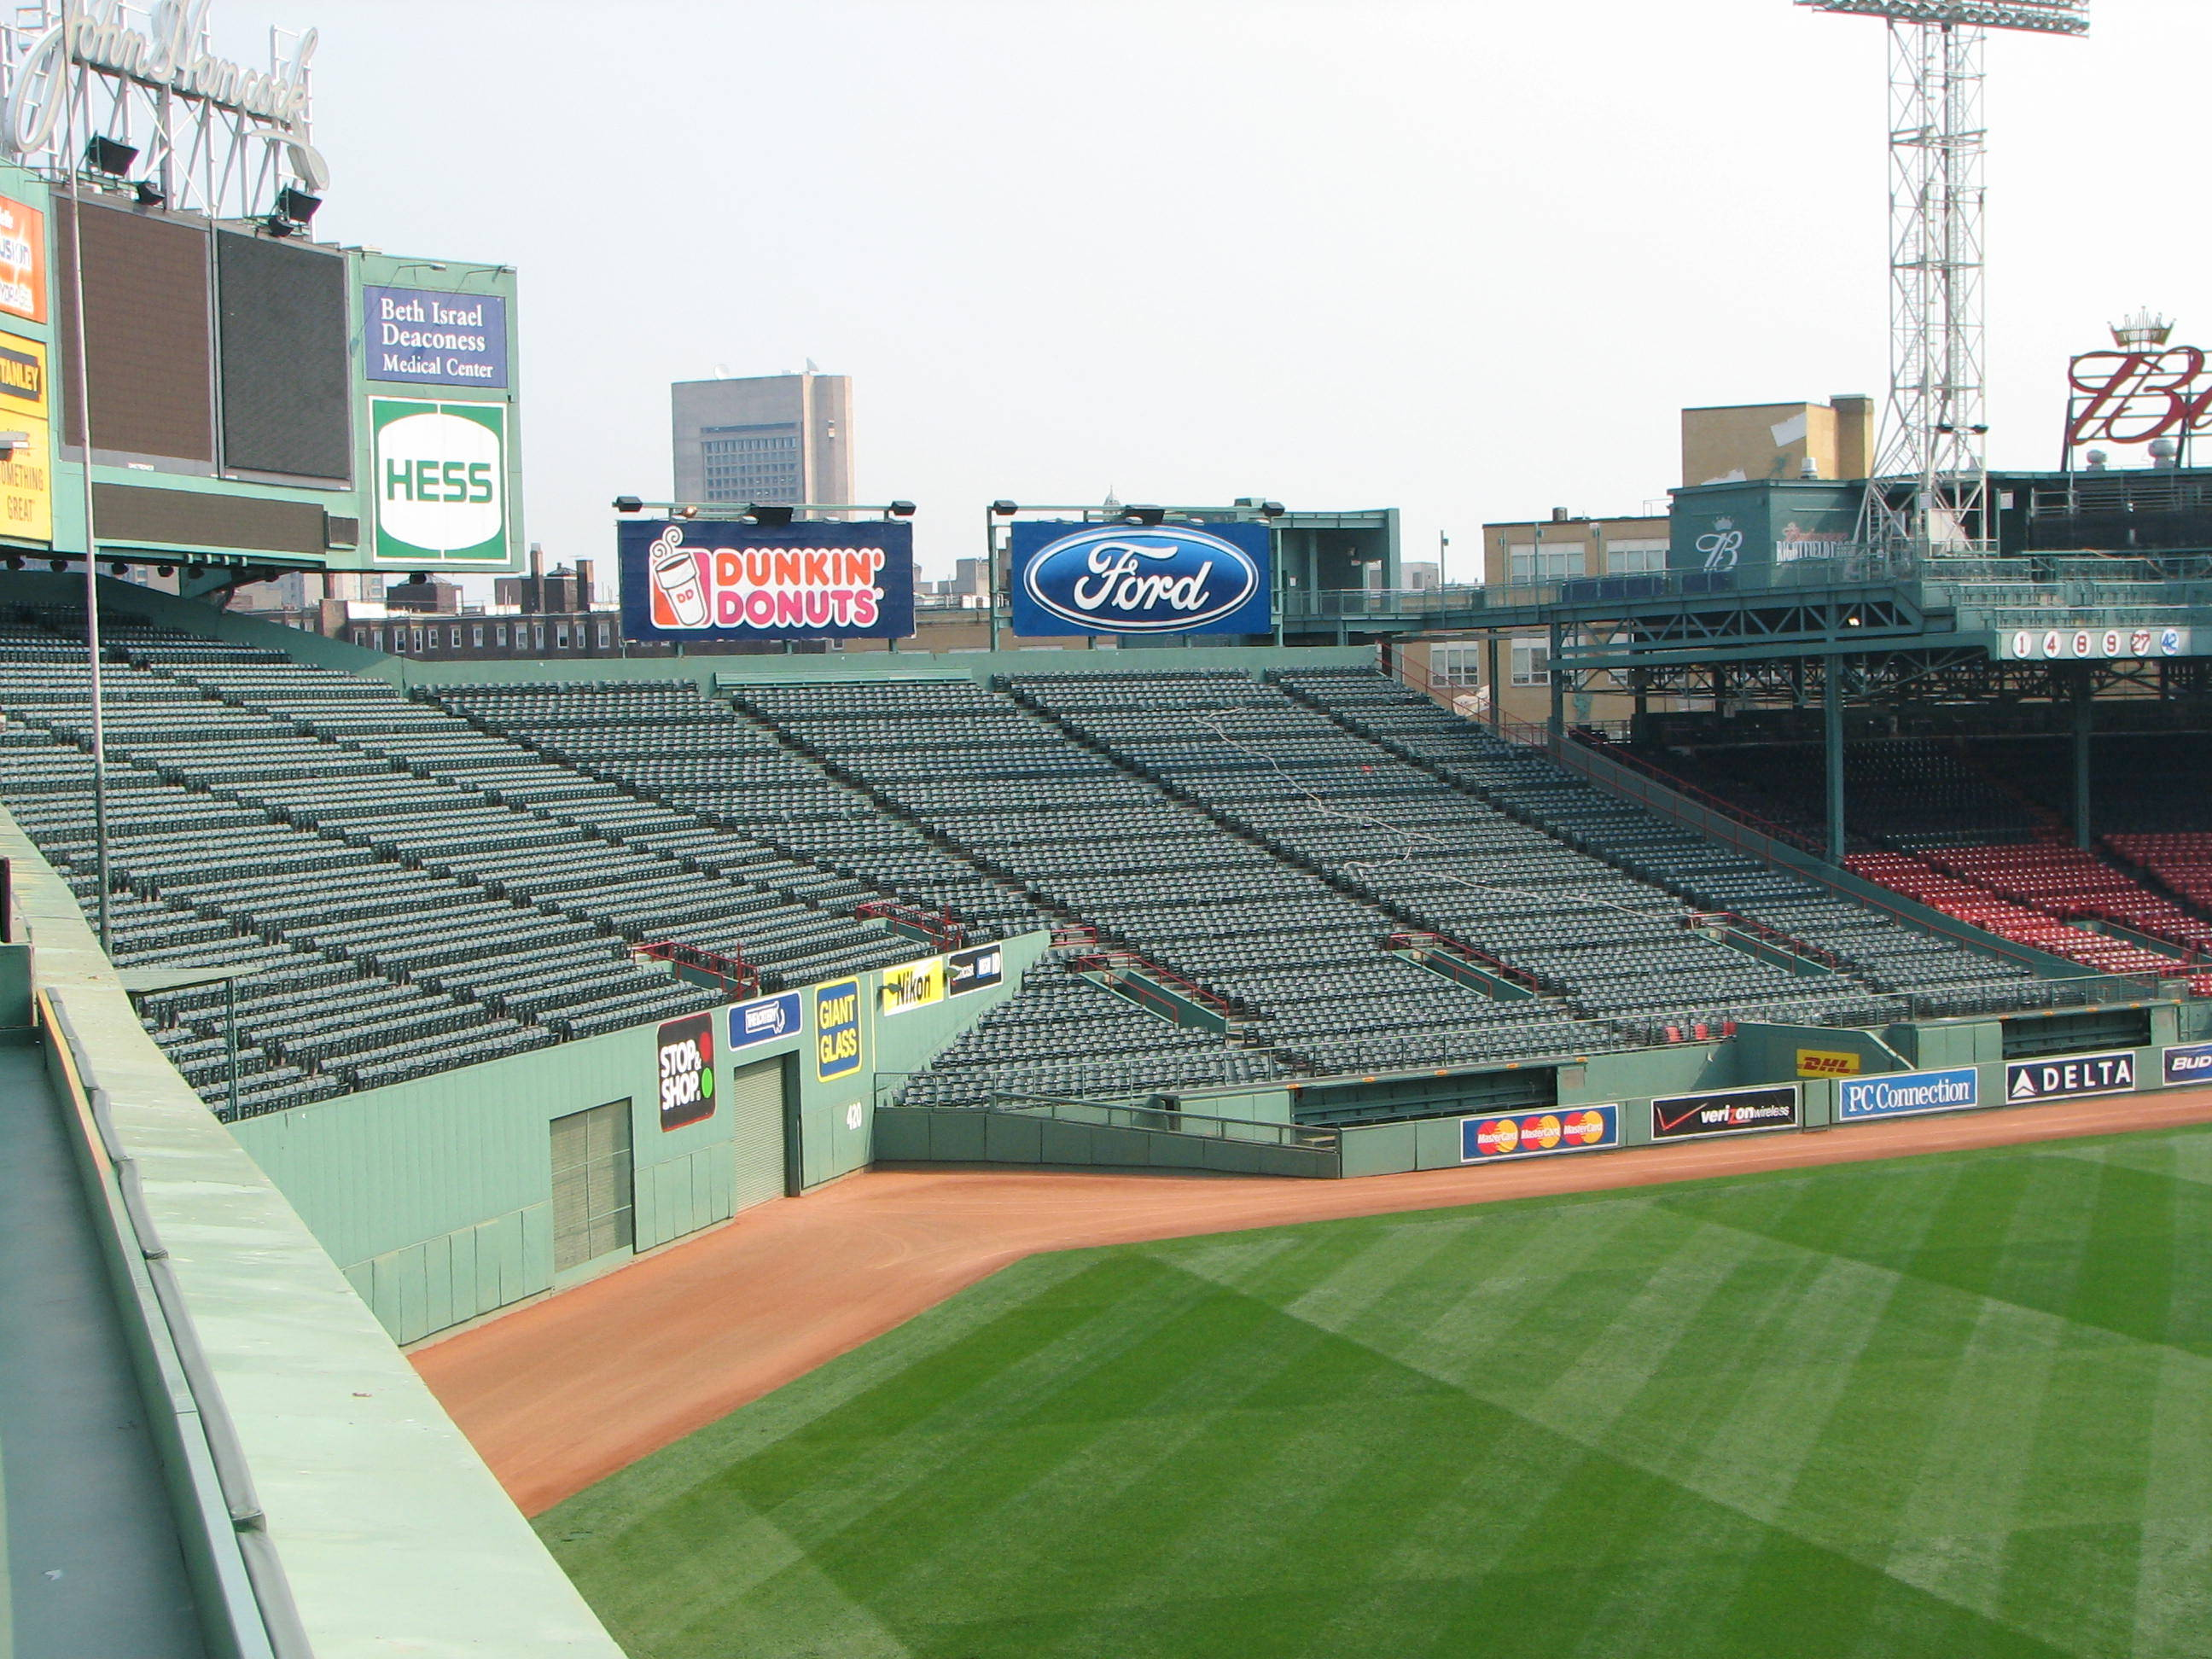 fenway park and parks - photo #28